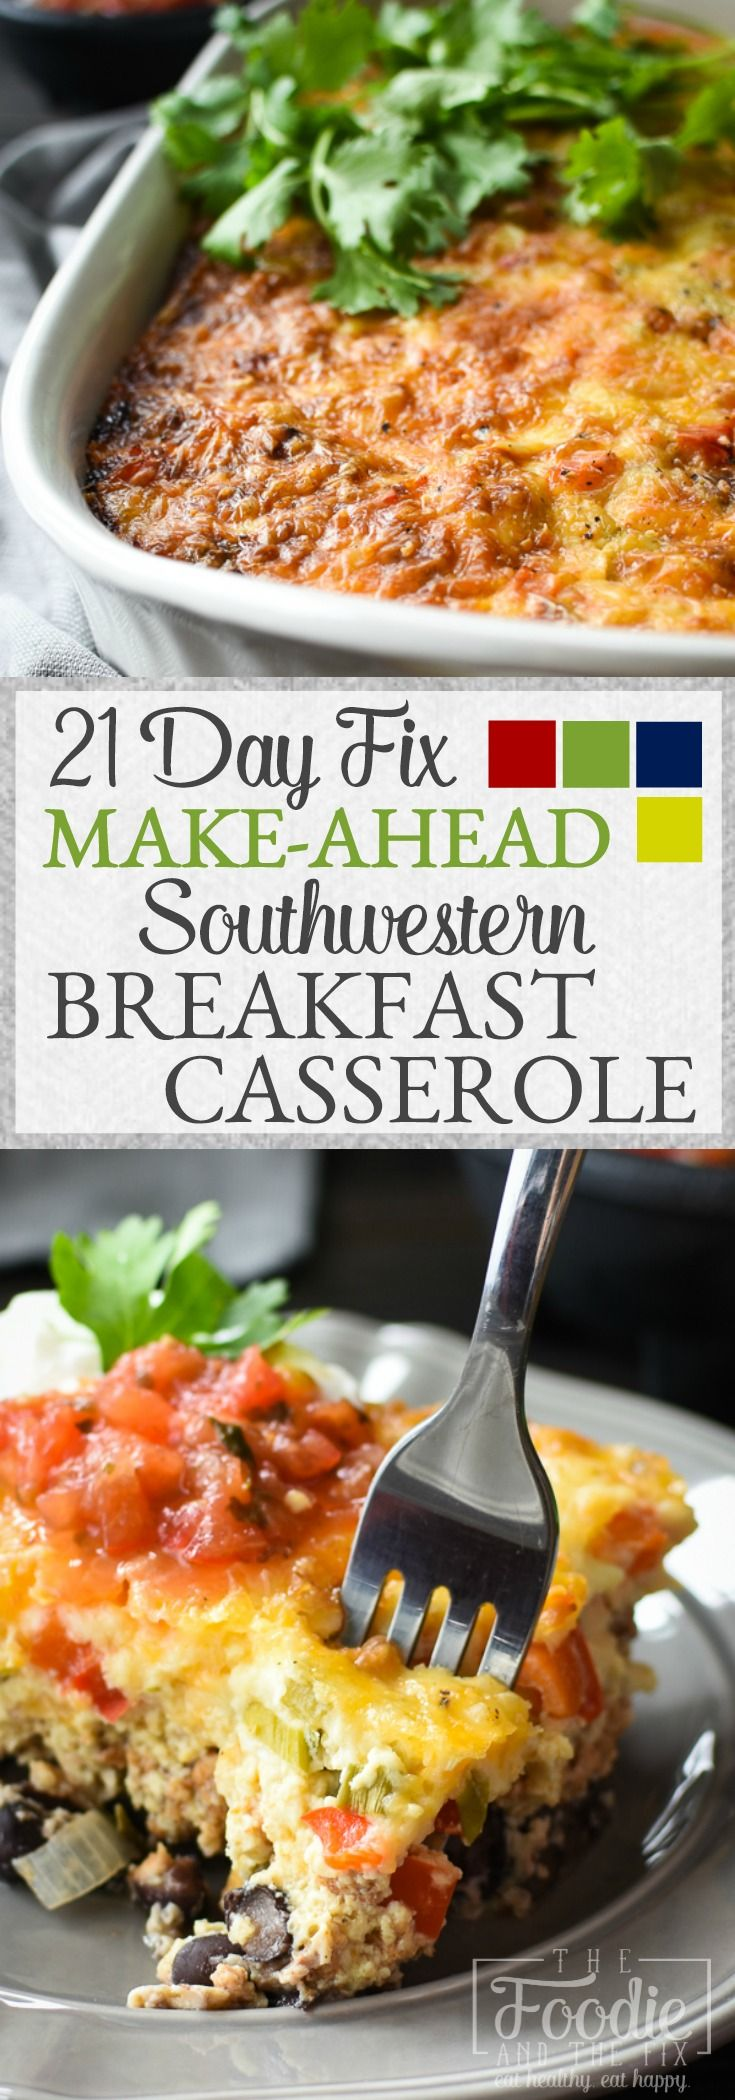 This easy 21 Day Fix Make-Ahead Southwestern Breakfast Casserole is the perfect meal-prep or company breakfast! Great for kids, brunches and holiday guests, it's also gluten-free!